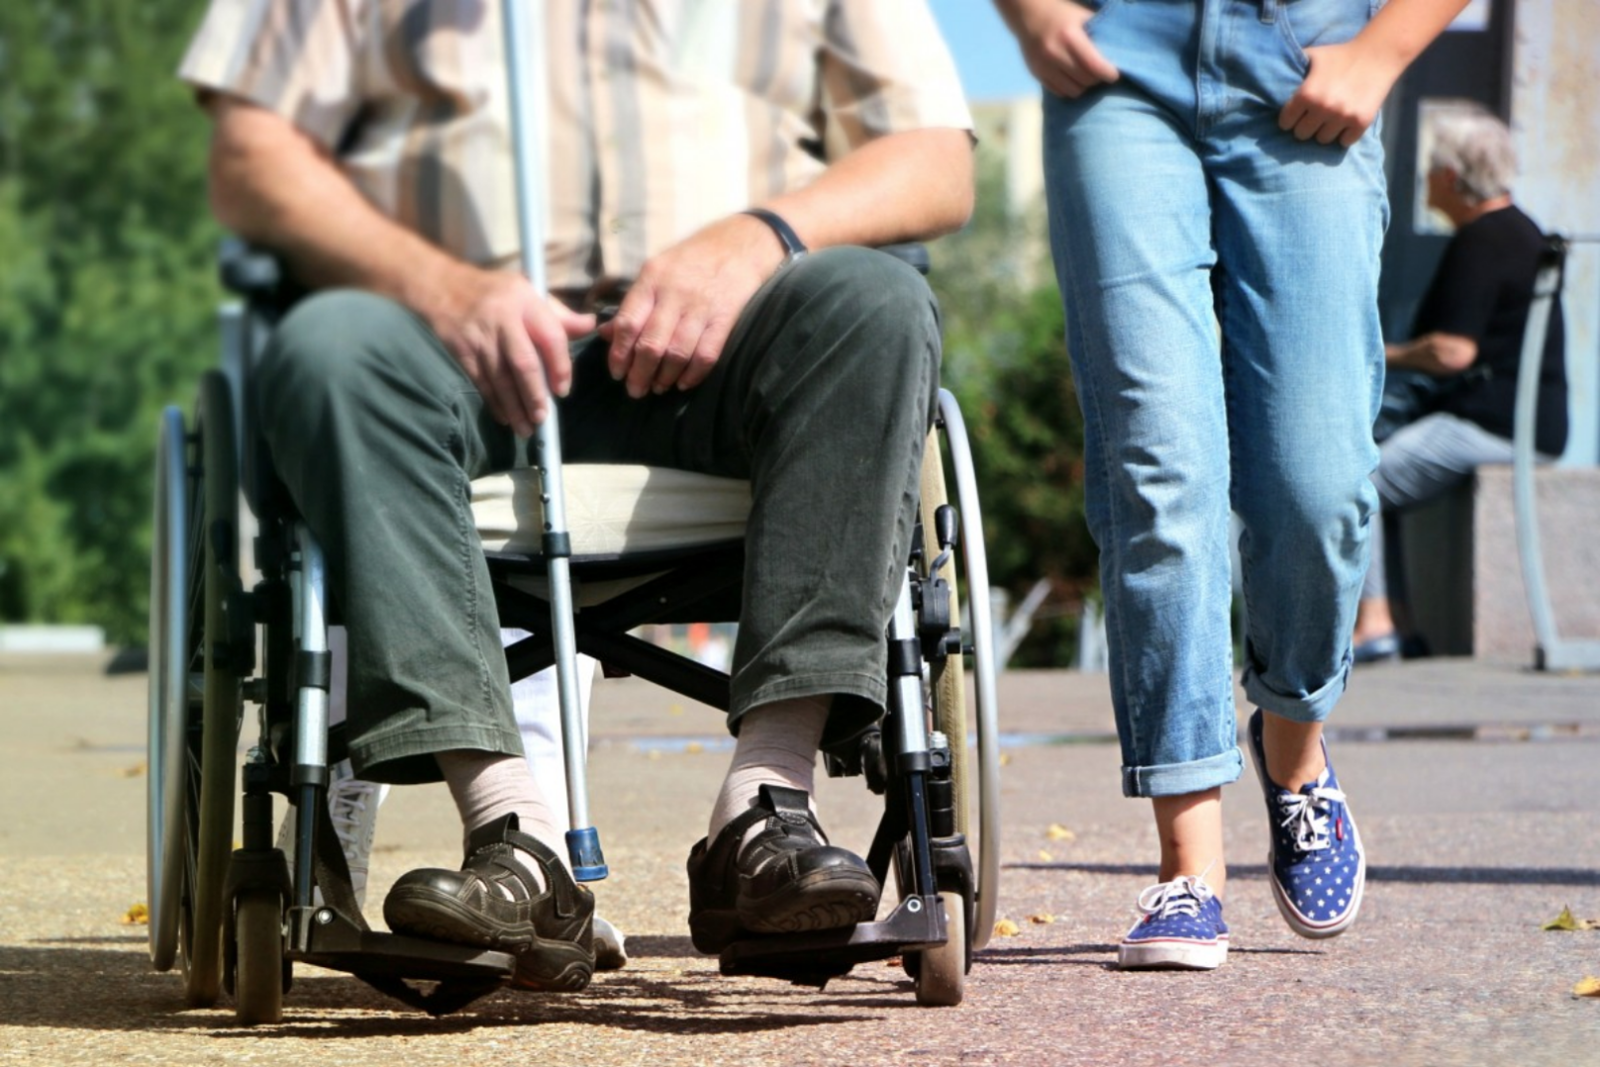 A senior citizen in a wheelchair being accompanied by a caregiver.